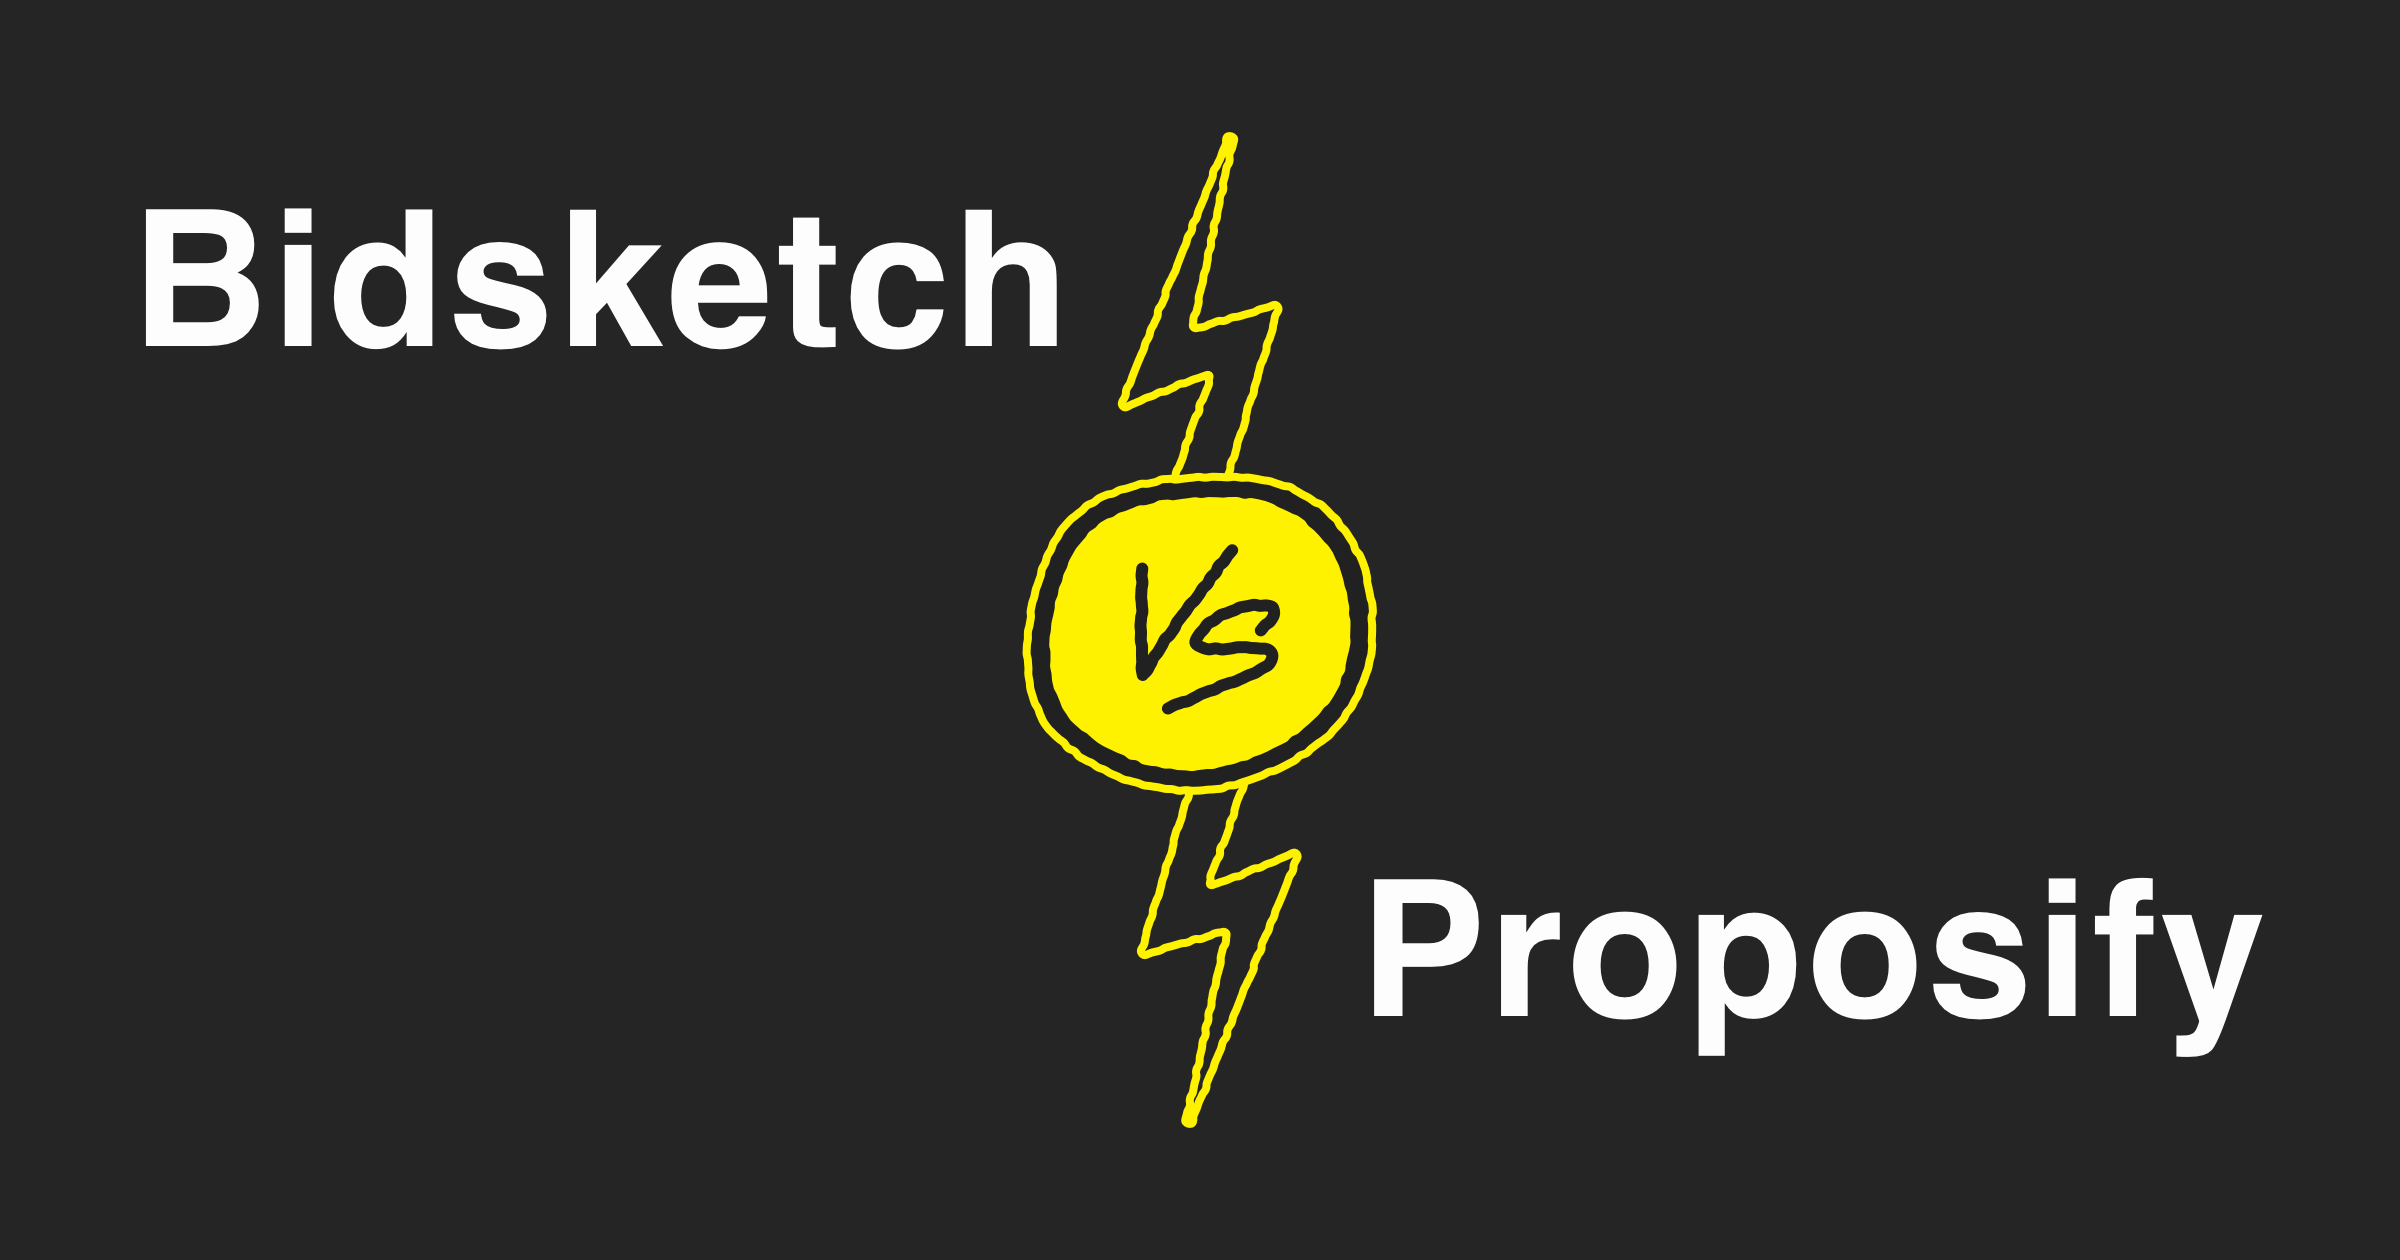 What is better Bidsketch or Proposify?